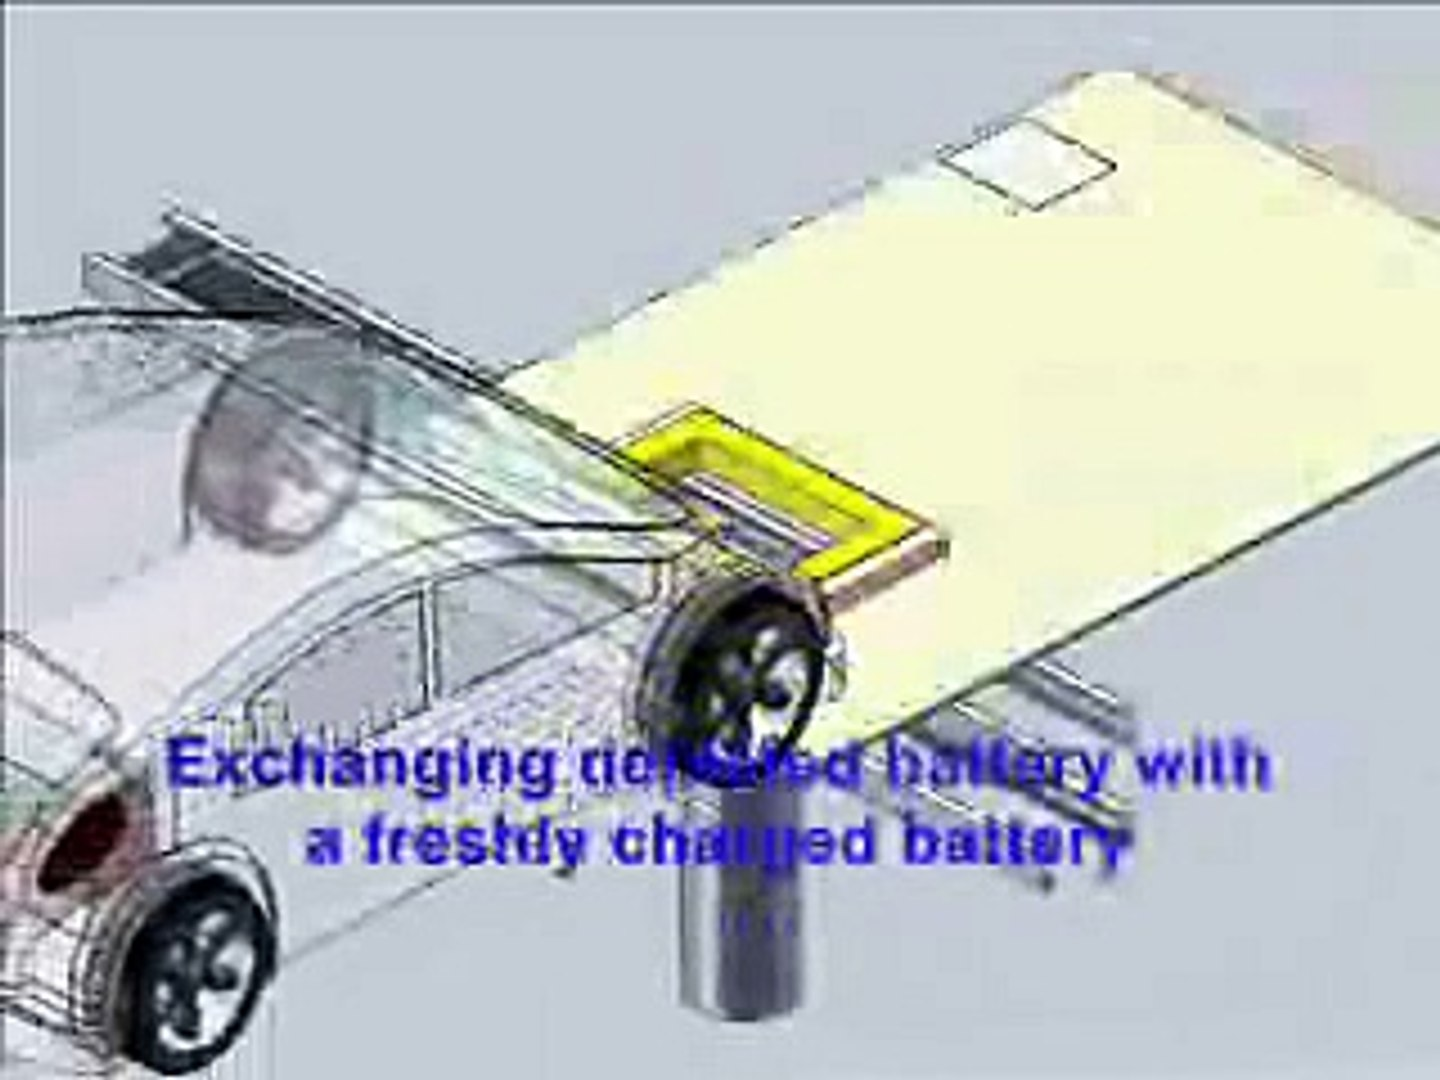 Unlimited Range Electric Vehicle = Six 12V Batteries + 4 Alternators